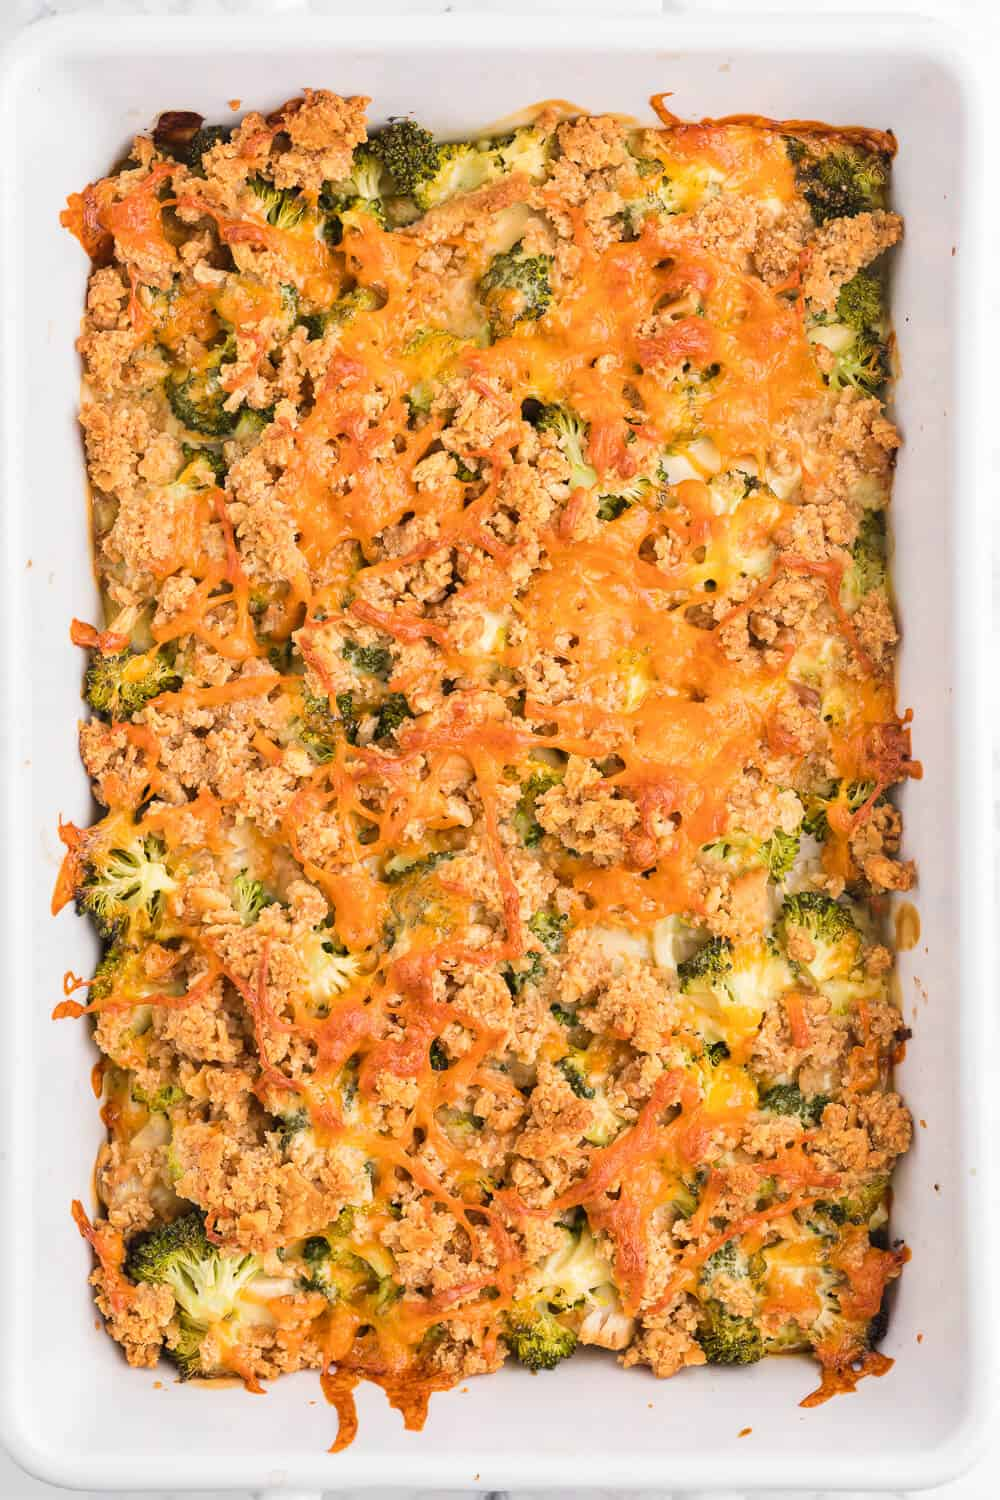 Chicken and Broccoli Casserole - This casserole is a great way to use leftover chicken. Combined with the broccoli and cheese, it is a family-pleasing main dish, served along side a salad.